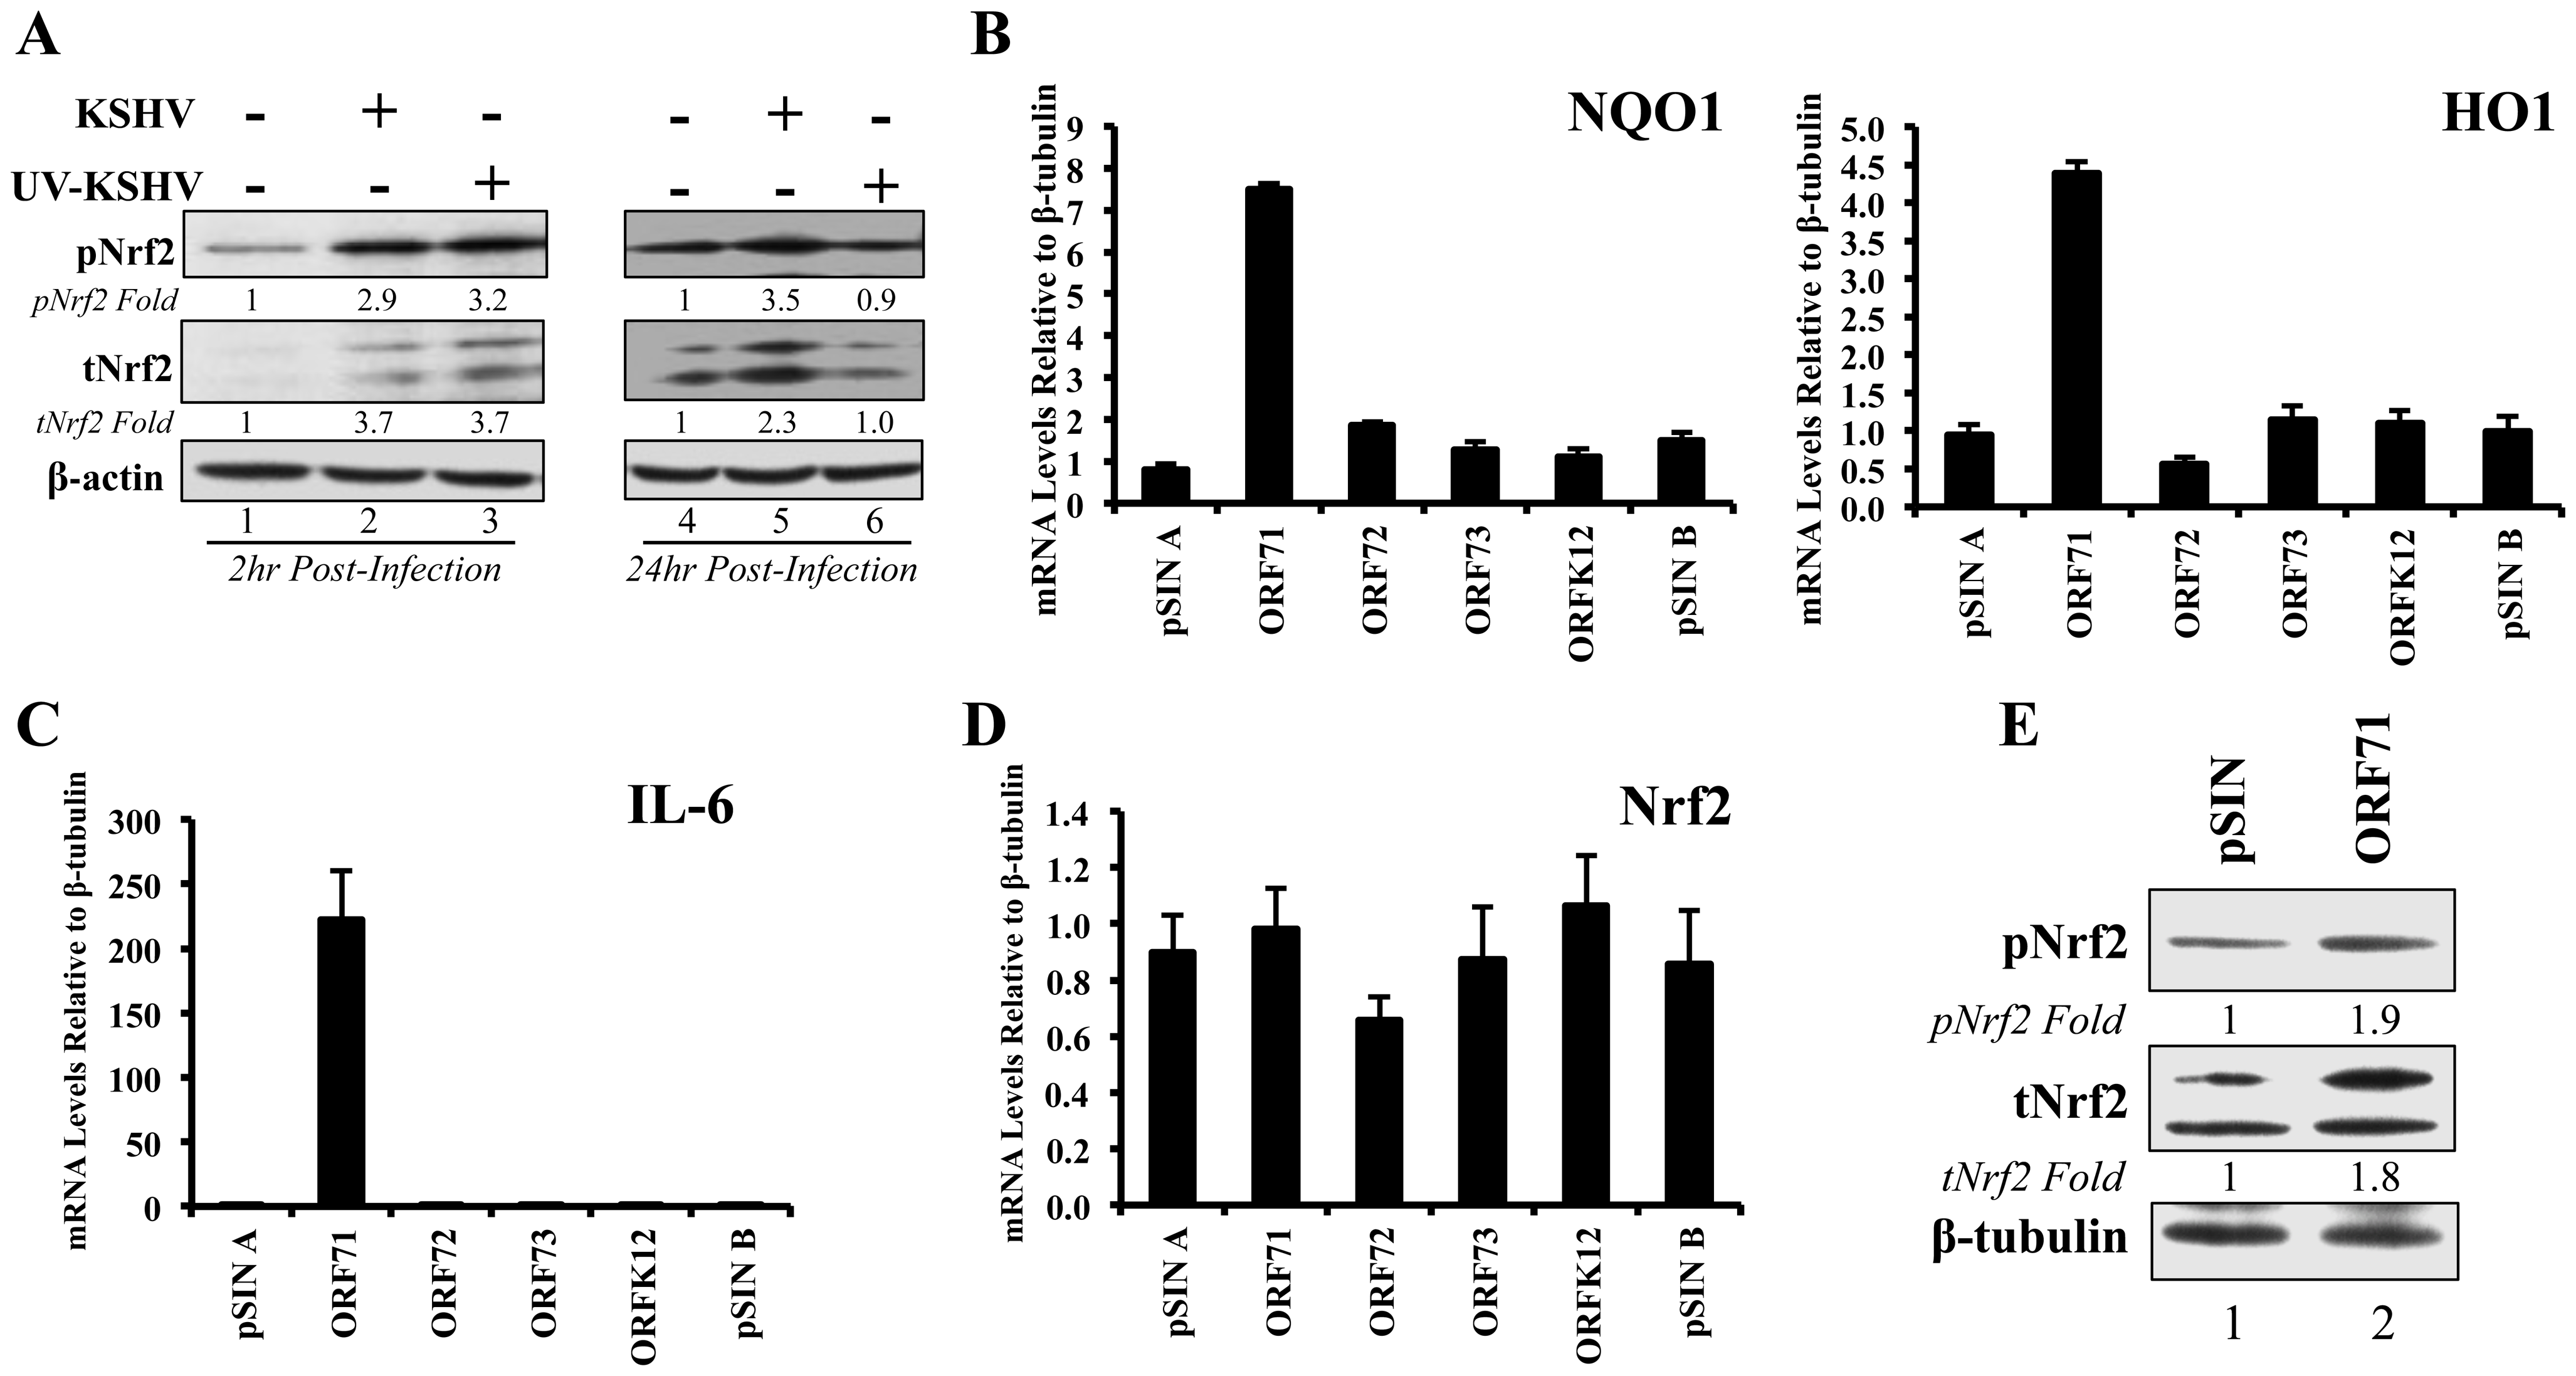 Nrf2 induction during UV-KSHV infection and during latent KSHV gene vFLIP overexpression.